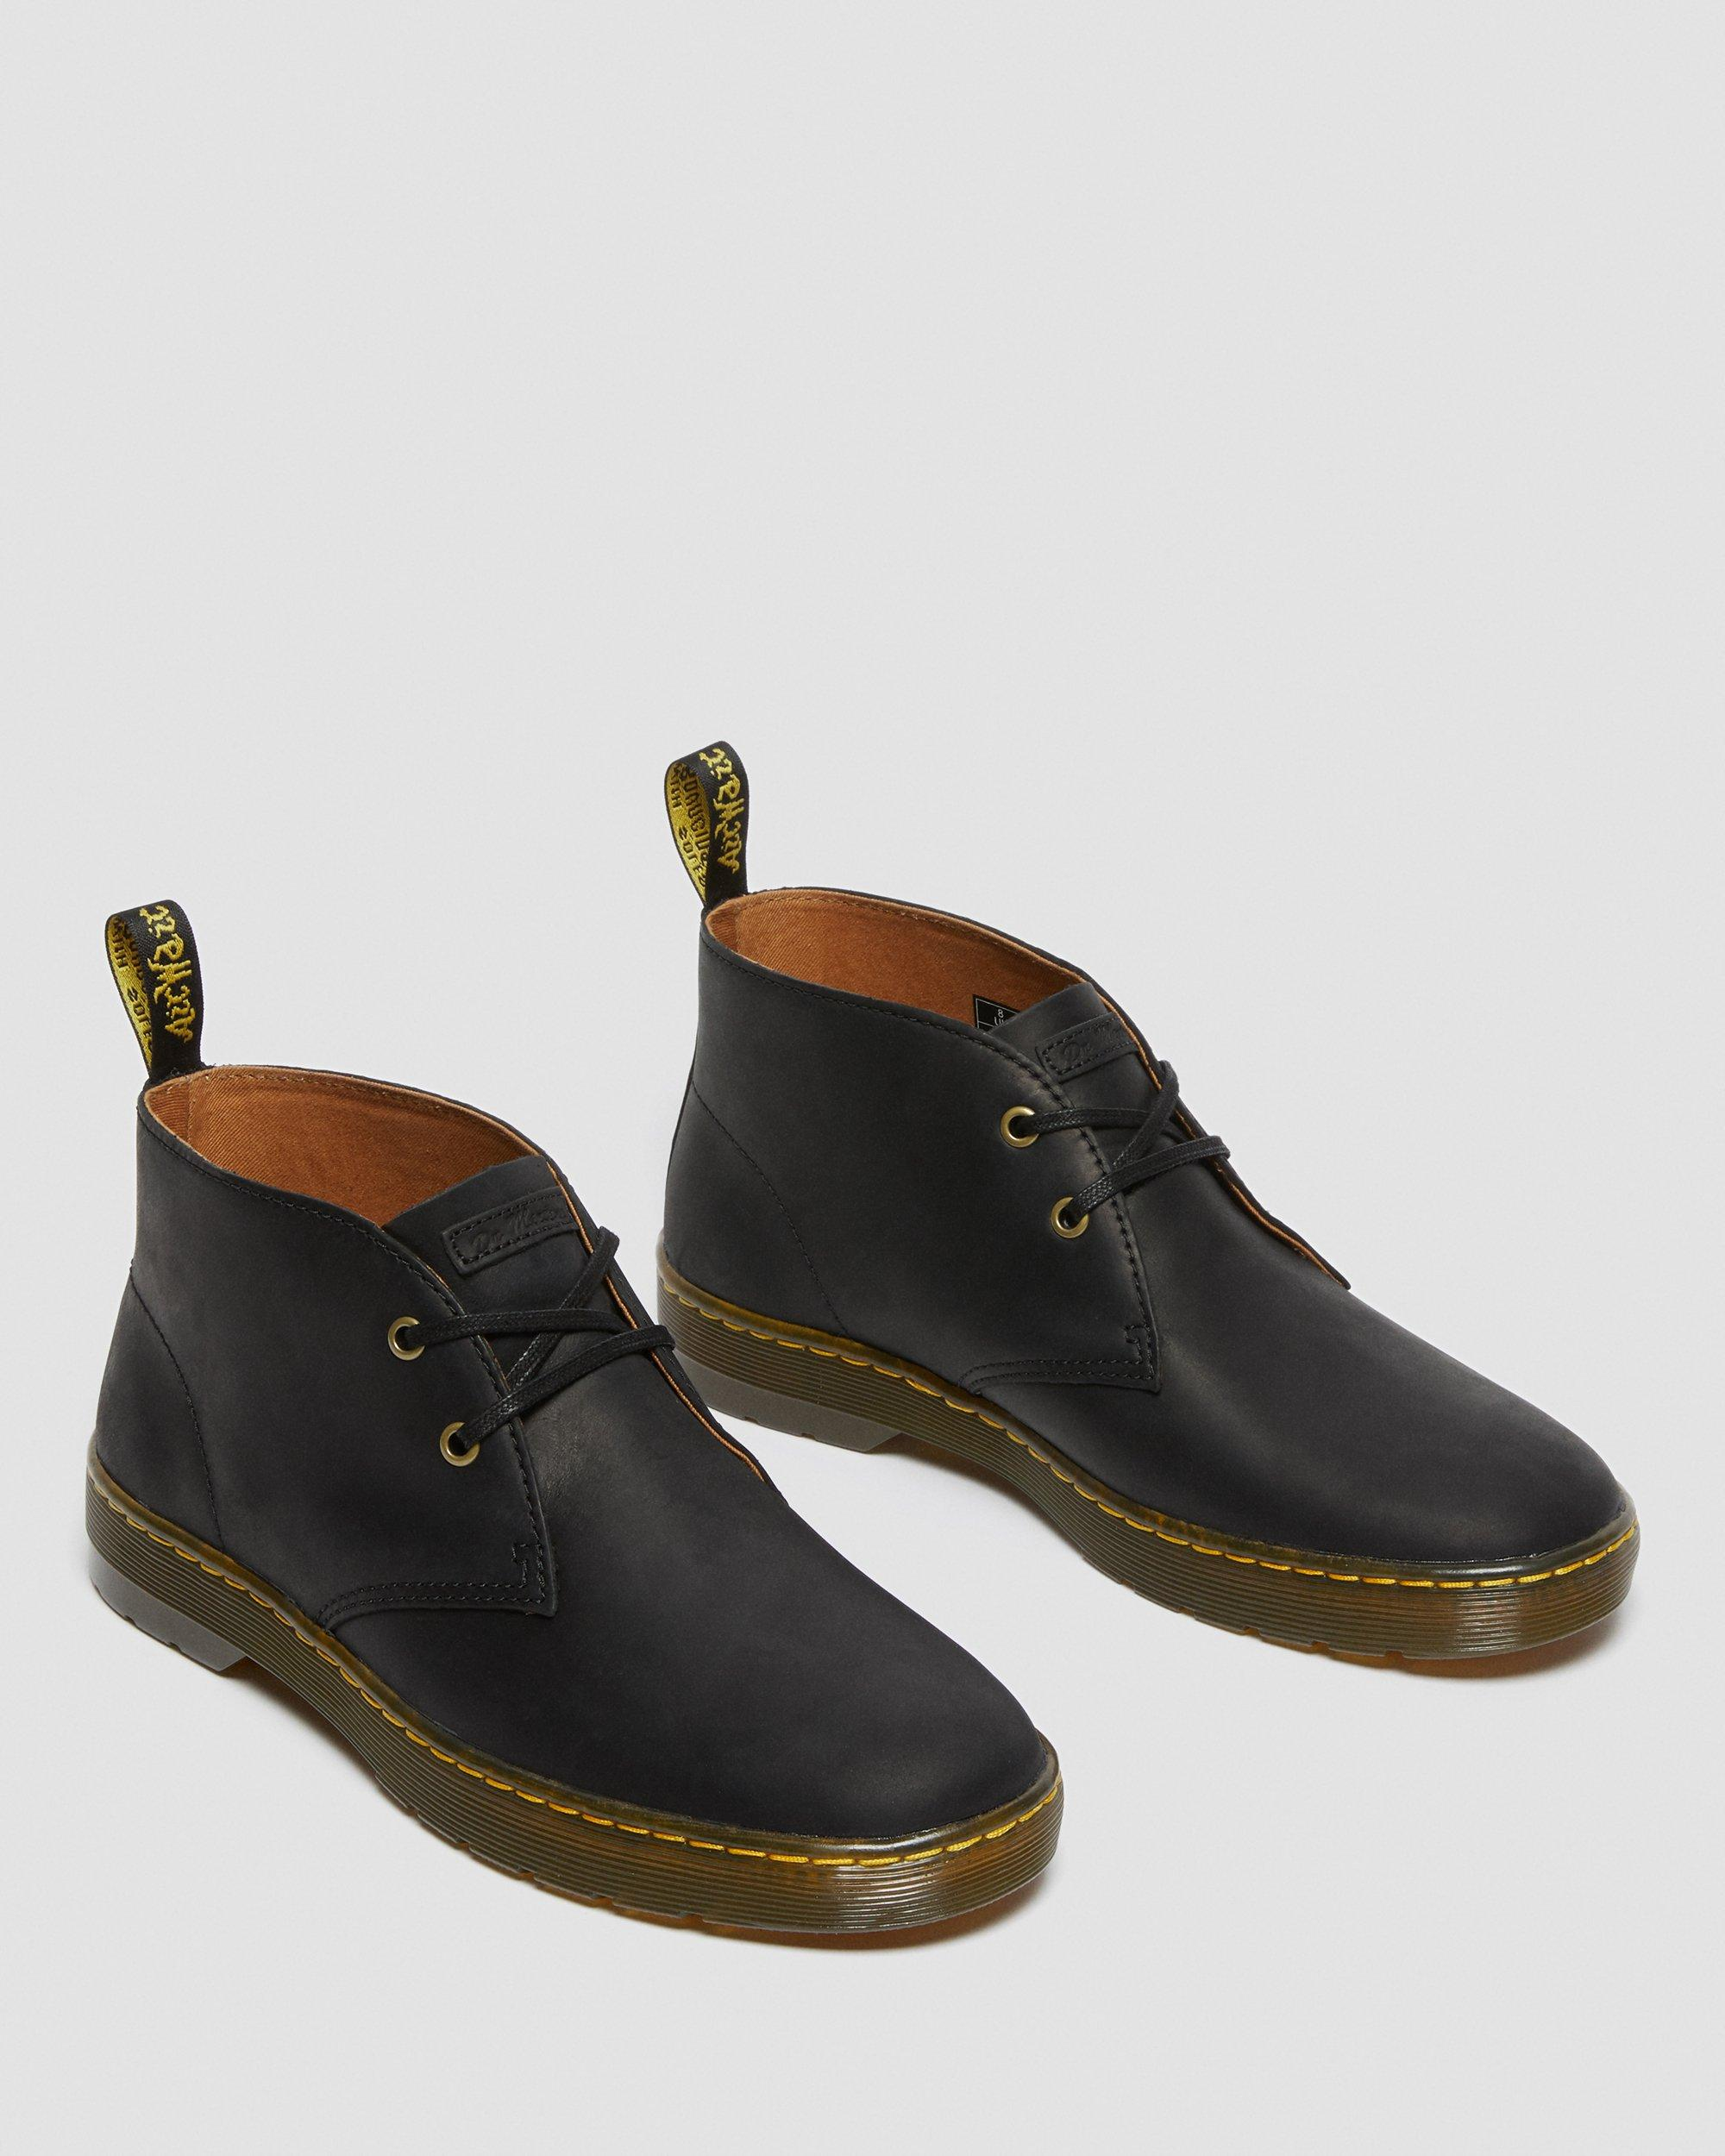 DR MARTENS CABRILLO MEN'S WYOMING LEATHER DESERT BOOTS